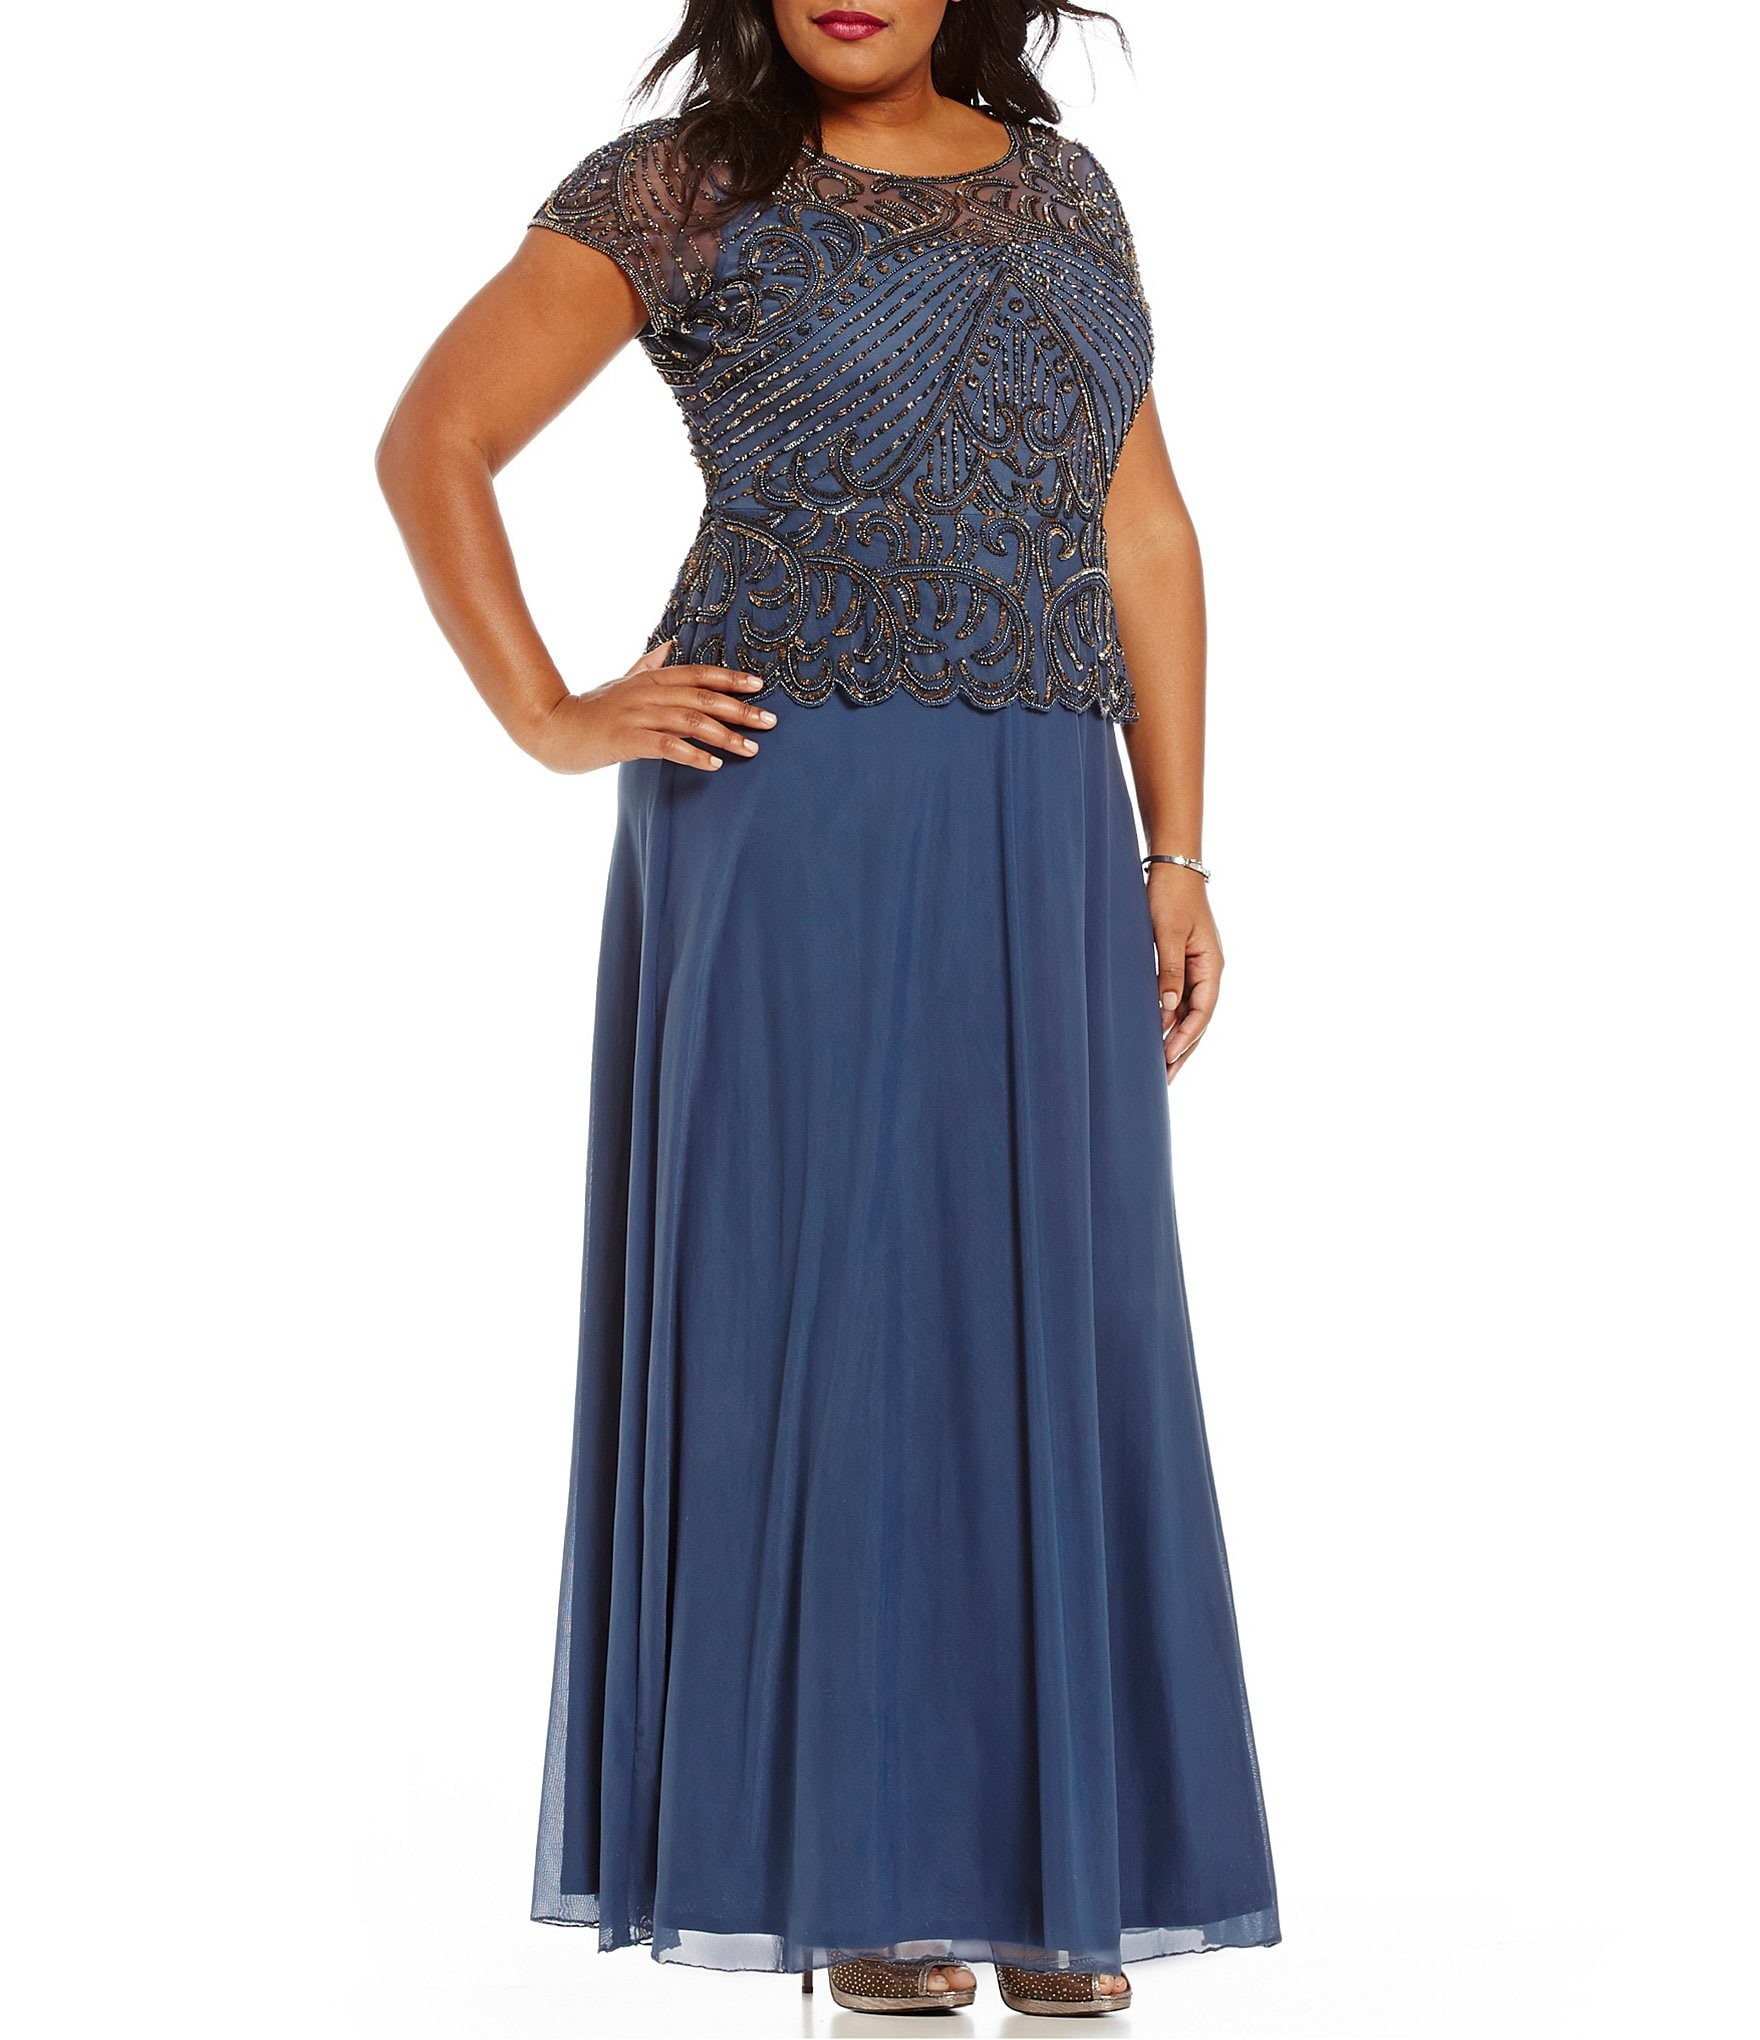 Pisarro nights plus beaded peplum dress dillards for Dillards plus size wedding guest dresses